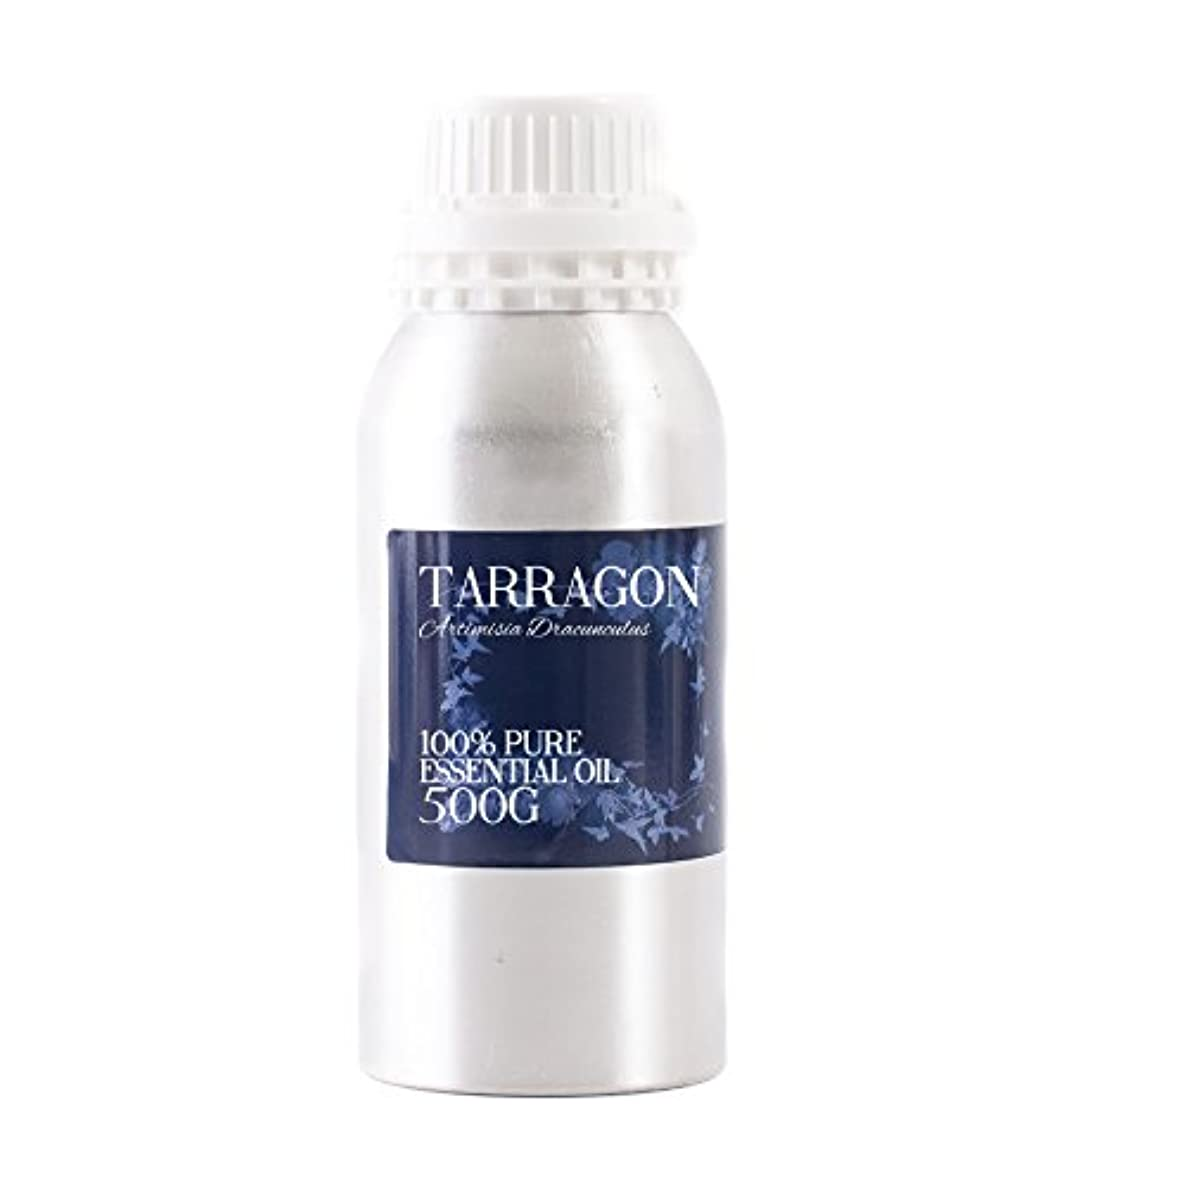 遅いプレフィックス自殺Mystic Moments | Tarragon Essential Oil - 500g - 100% Pure